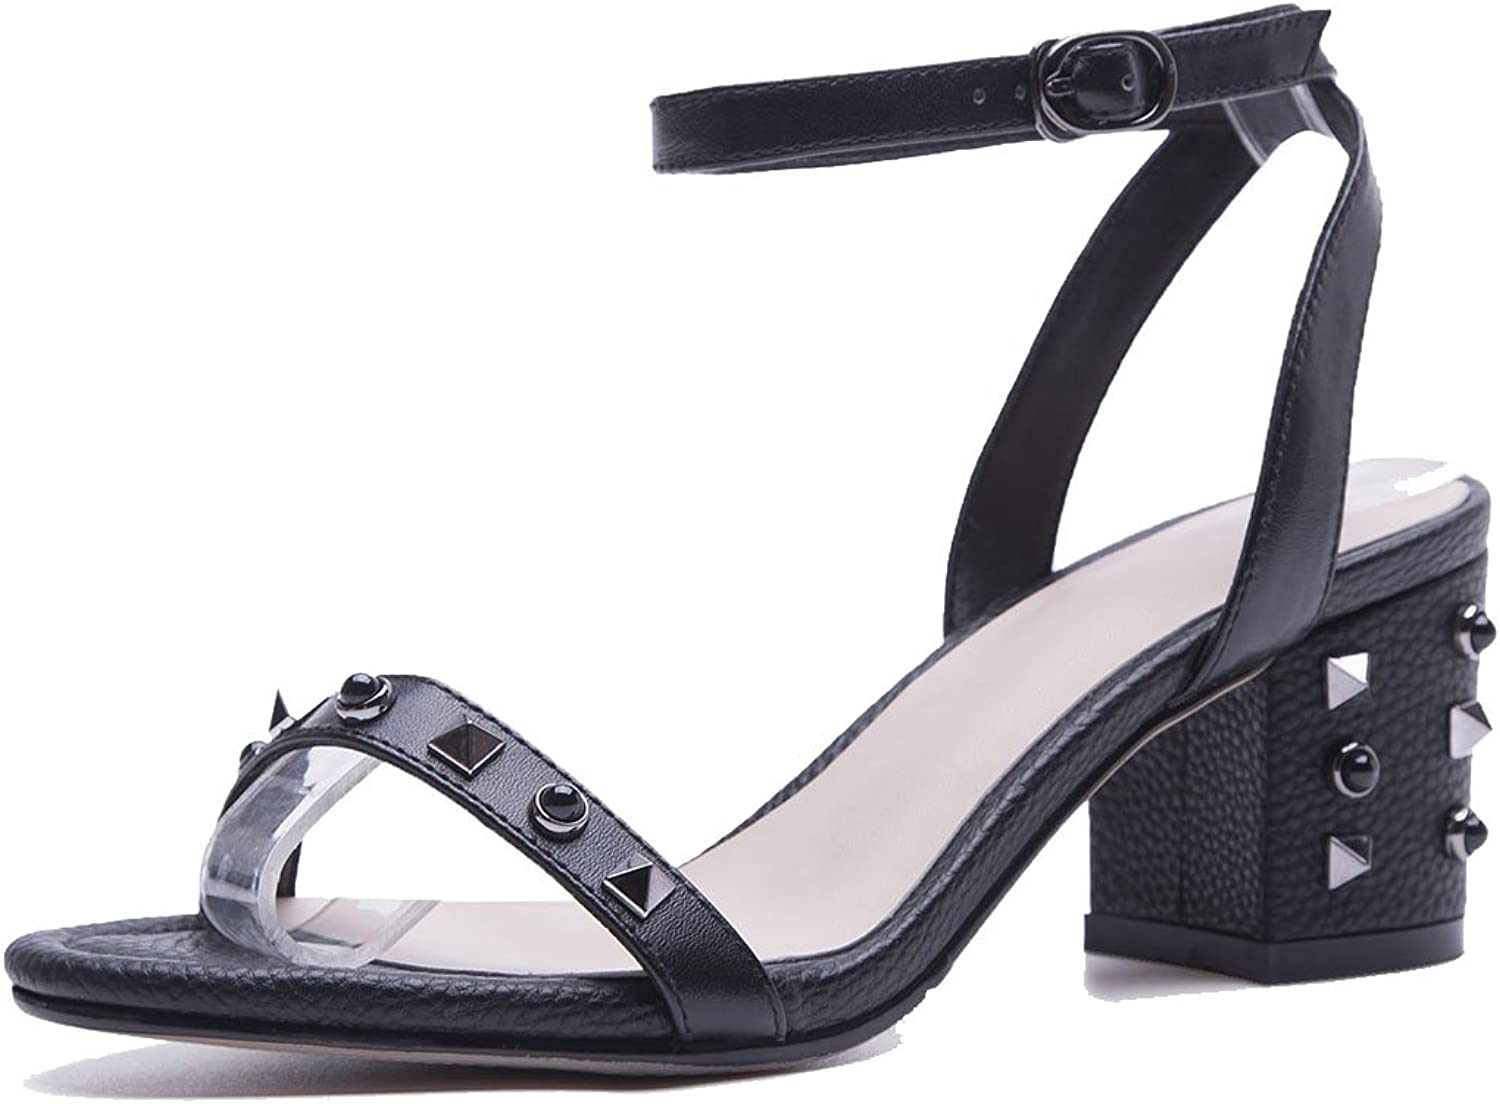 LZWSMGS Women's Ladies Leather Open Toe T Belt Sandals Summer Rivets with High Heels Court shoes High Heels Office Work shoes Ladies Sandals (color   Black, Size   35)